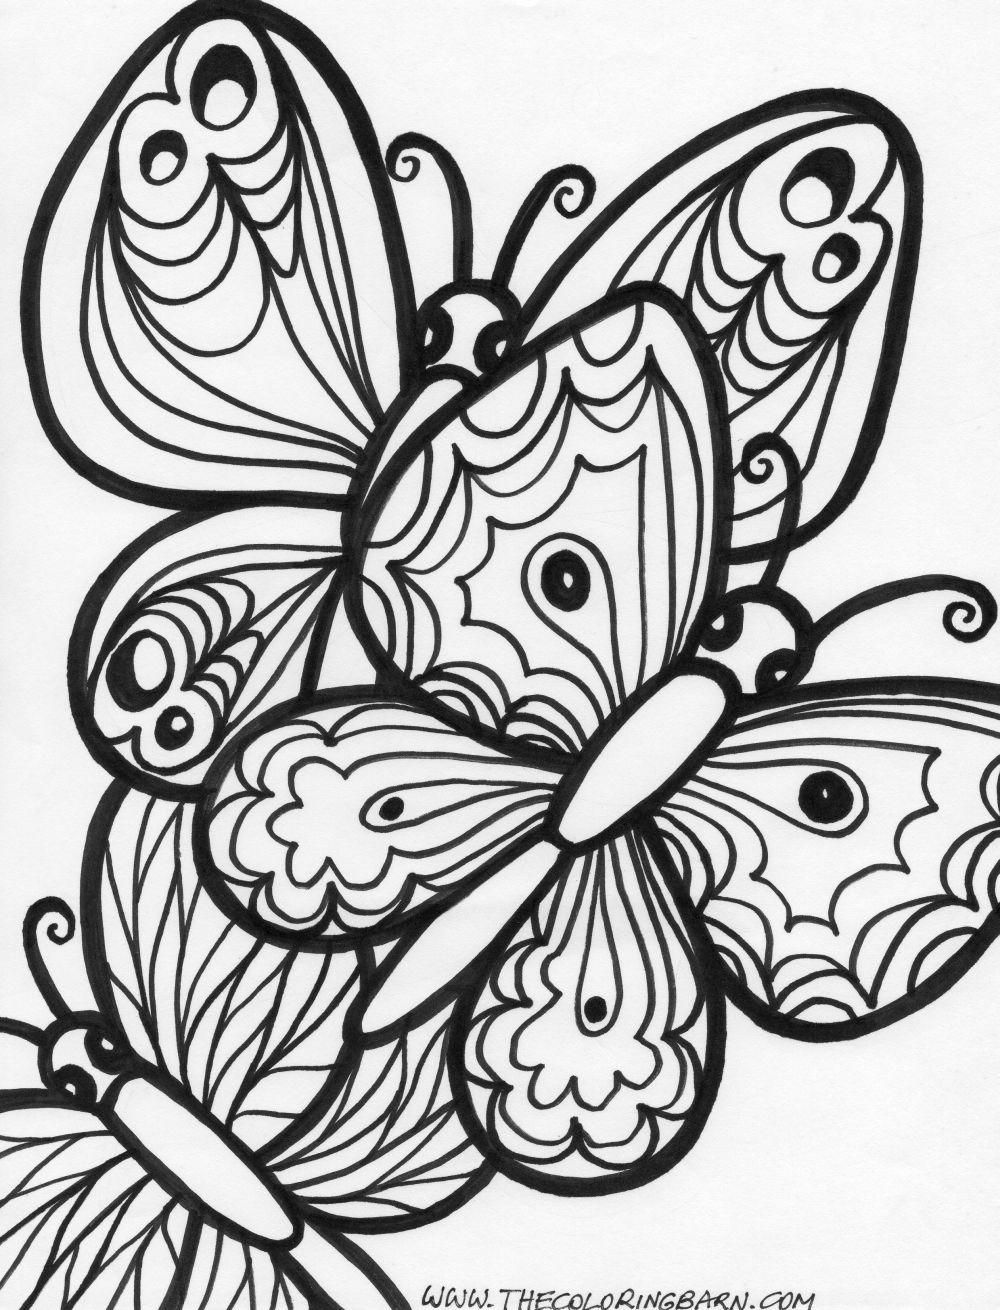 Printable Coloring Pages For Adults With Dementia | Coloring Page ...